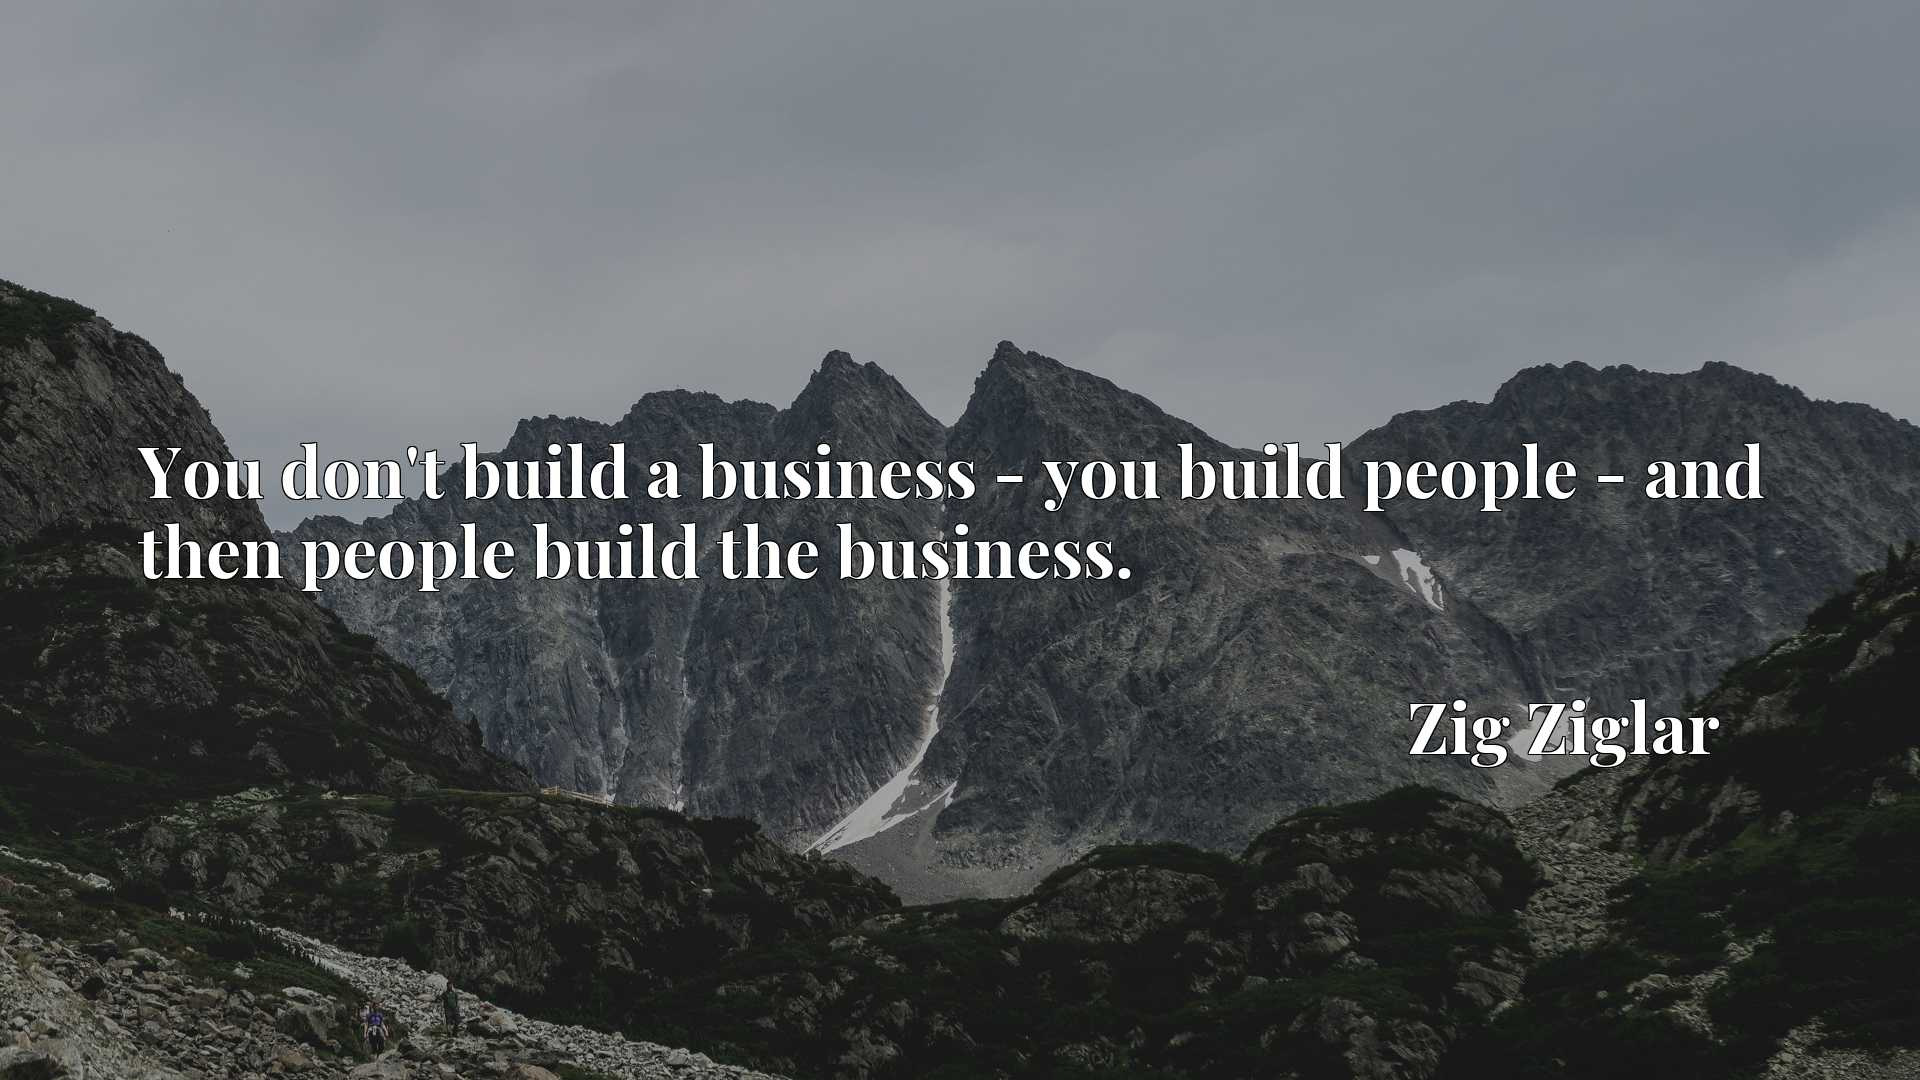 You don't build a business - you build people - and then people build the business.